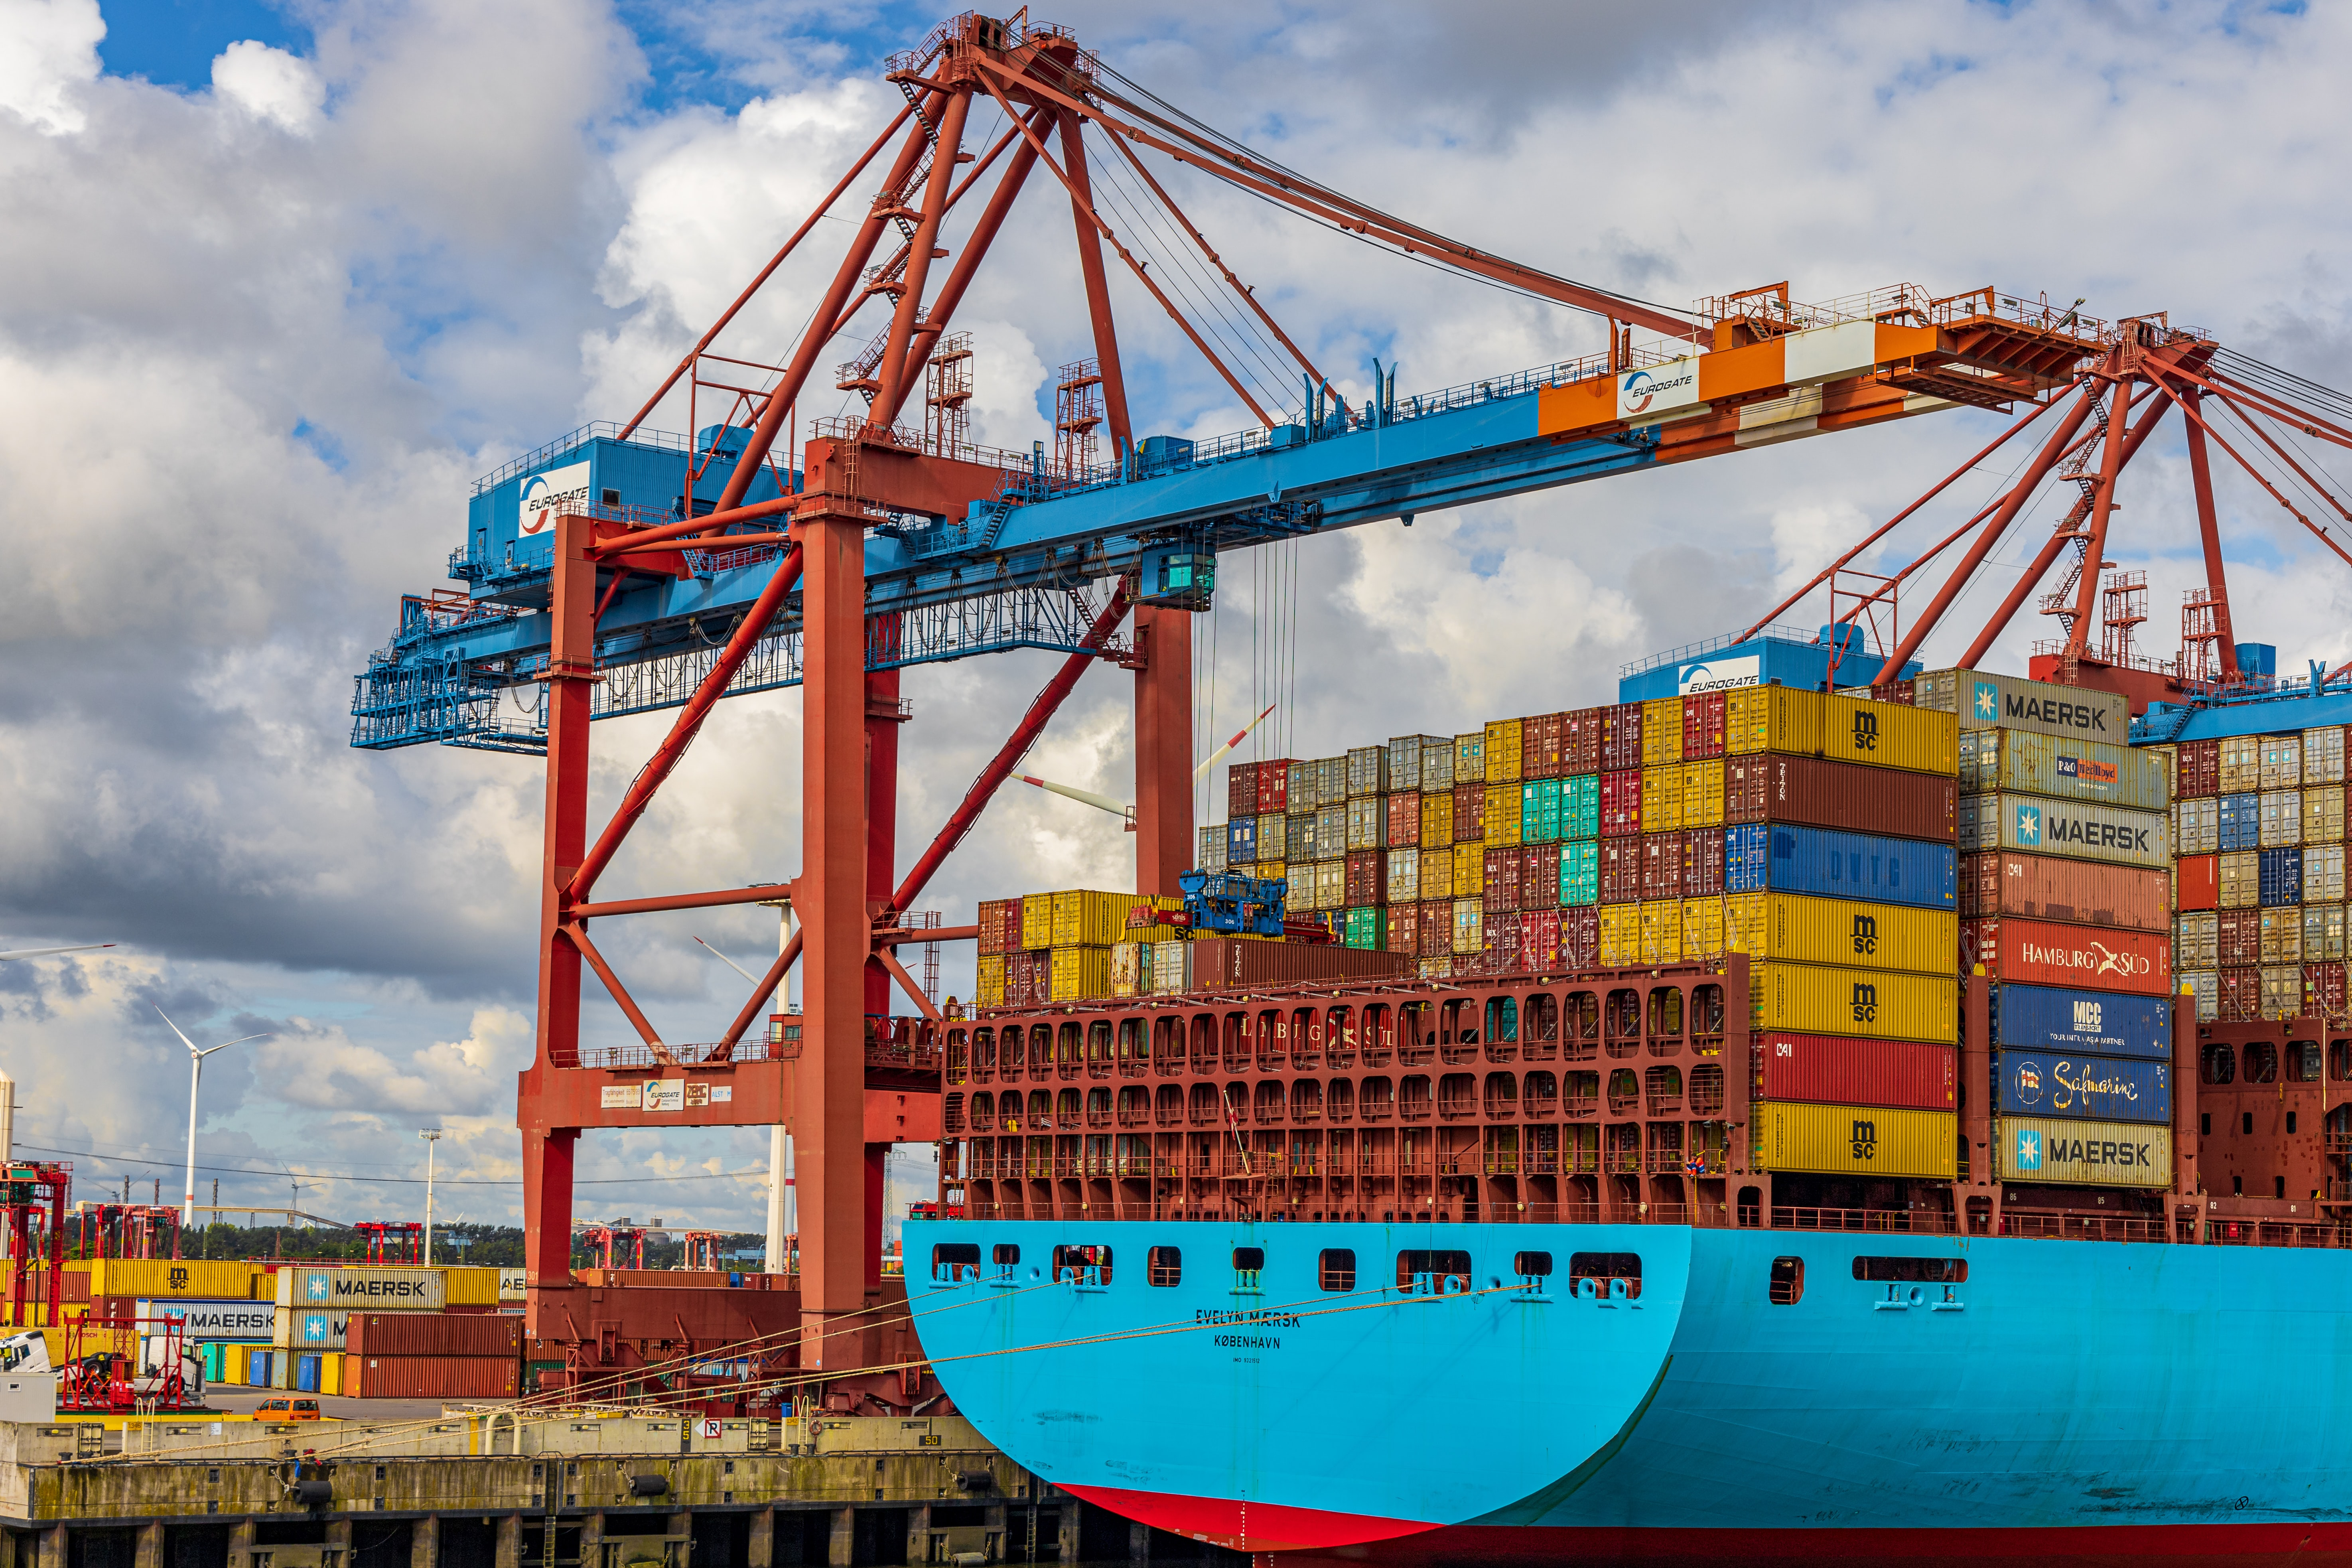 Trade and investment's role in Africa's post-COVID recovery